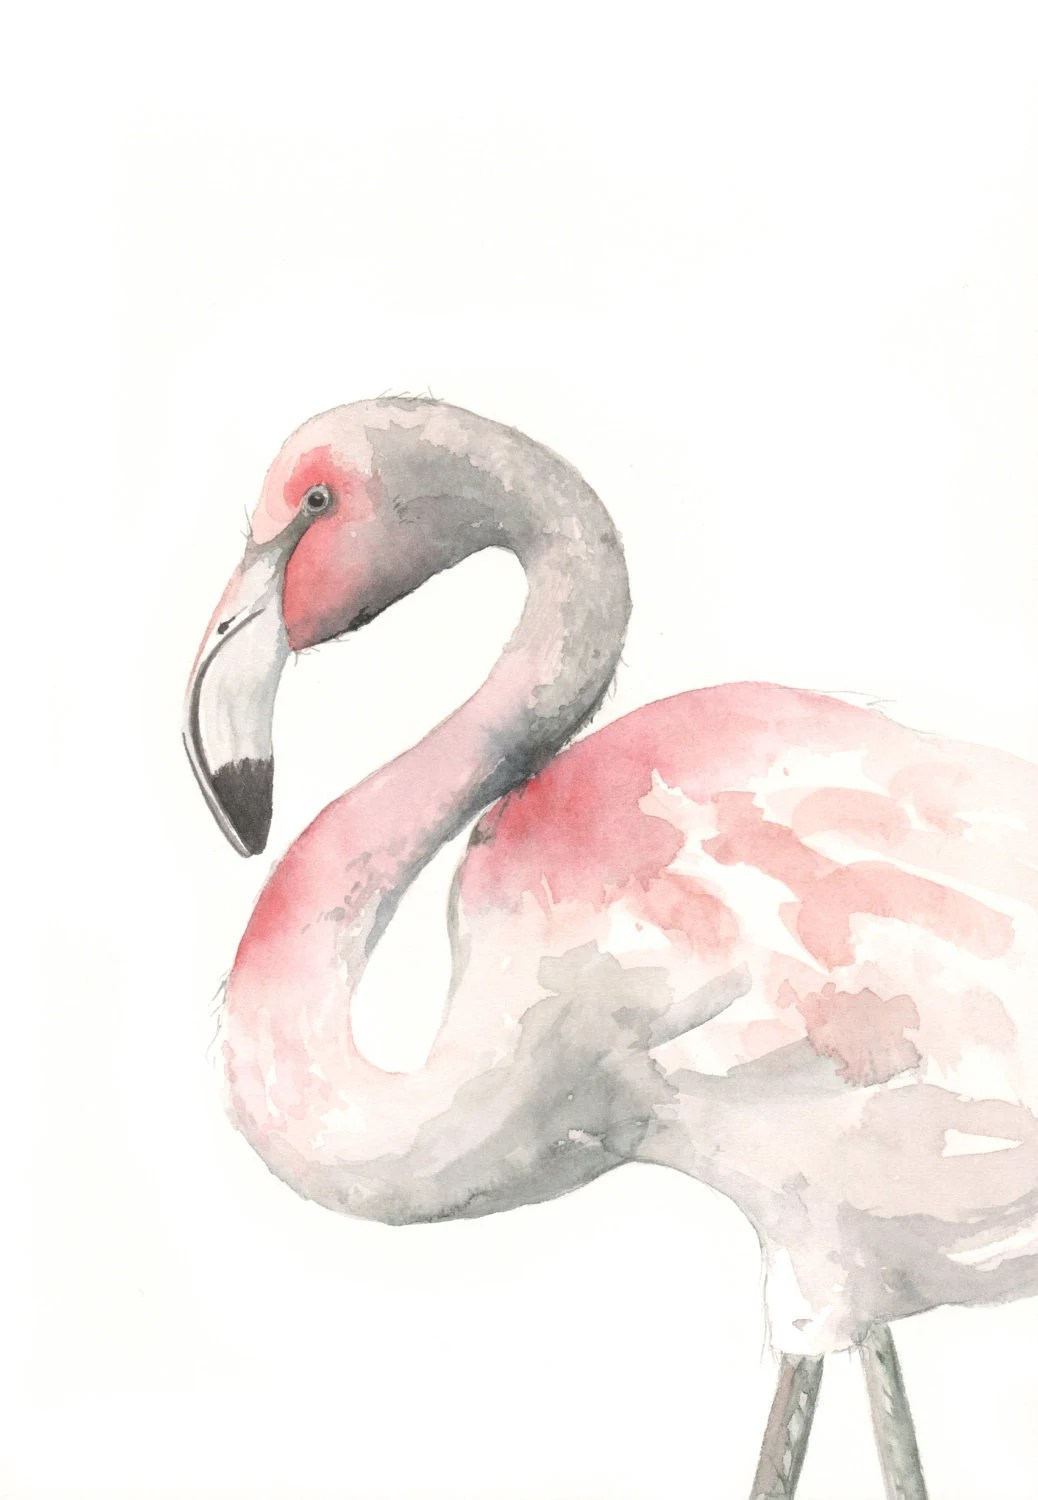 Flamingo Painting -F075 watercolor painting bird wildlife nature art pink - Archival print of watercolor painting 5 by 7 print - Splodgepodge